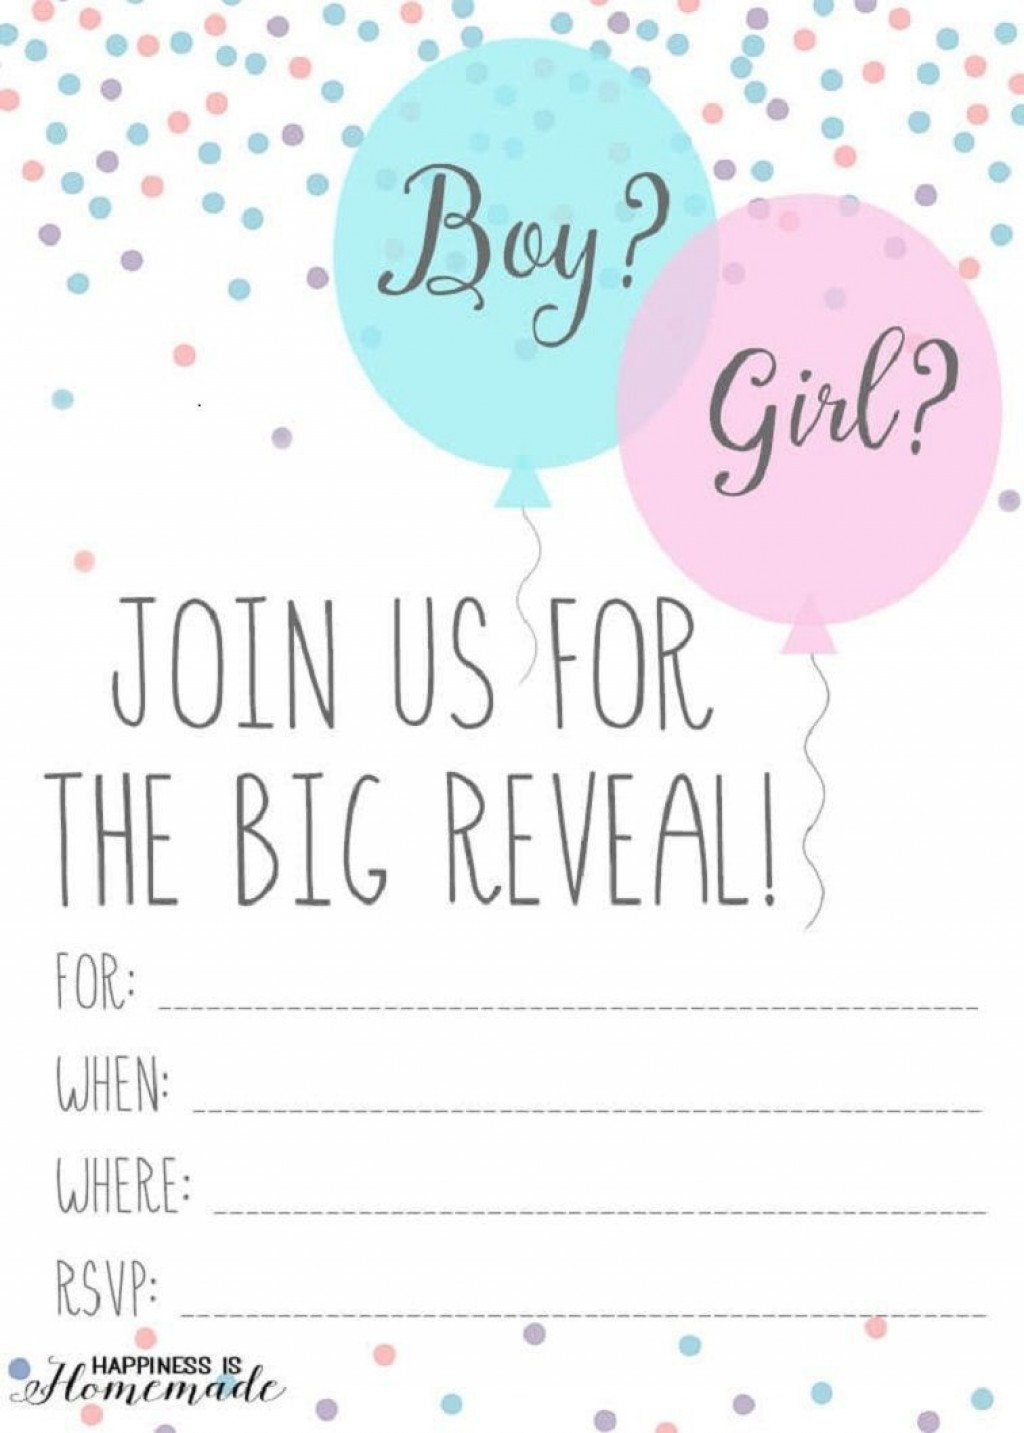 005 Remarkable Gender Reveal Invitation Template Highest Quality  Templates Party Free Printable MakerLarge